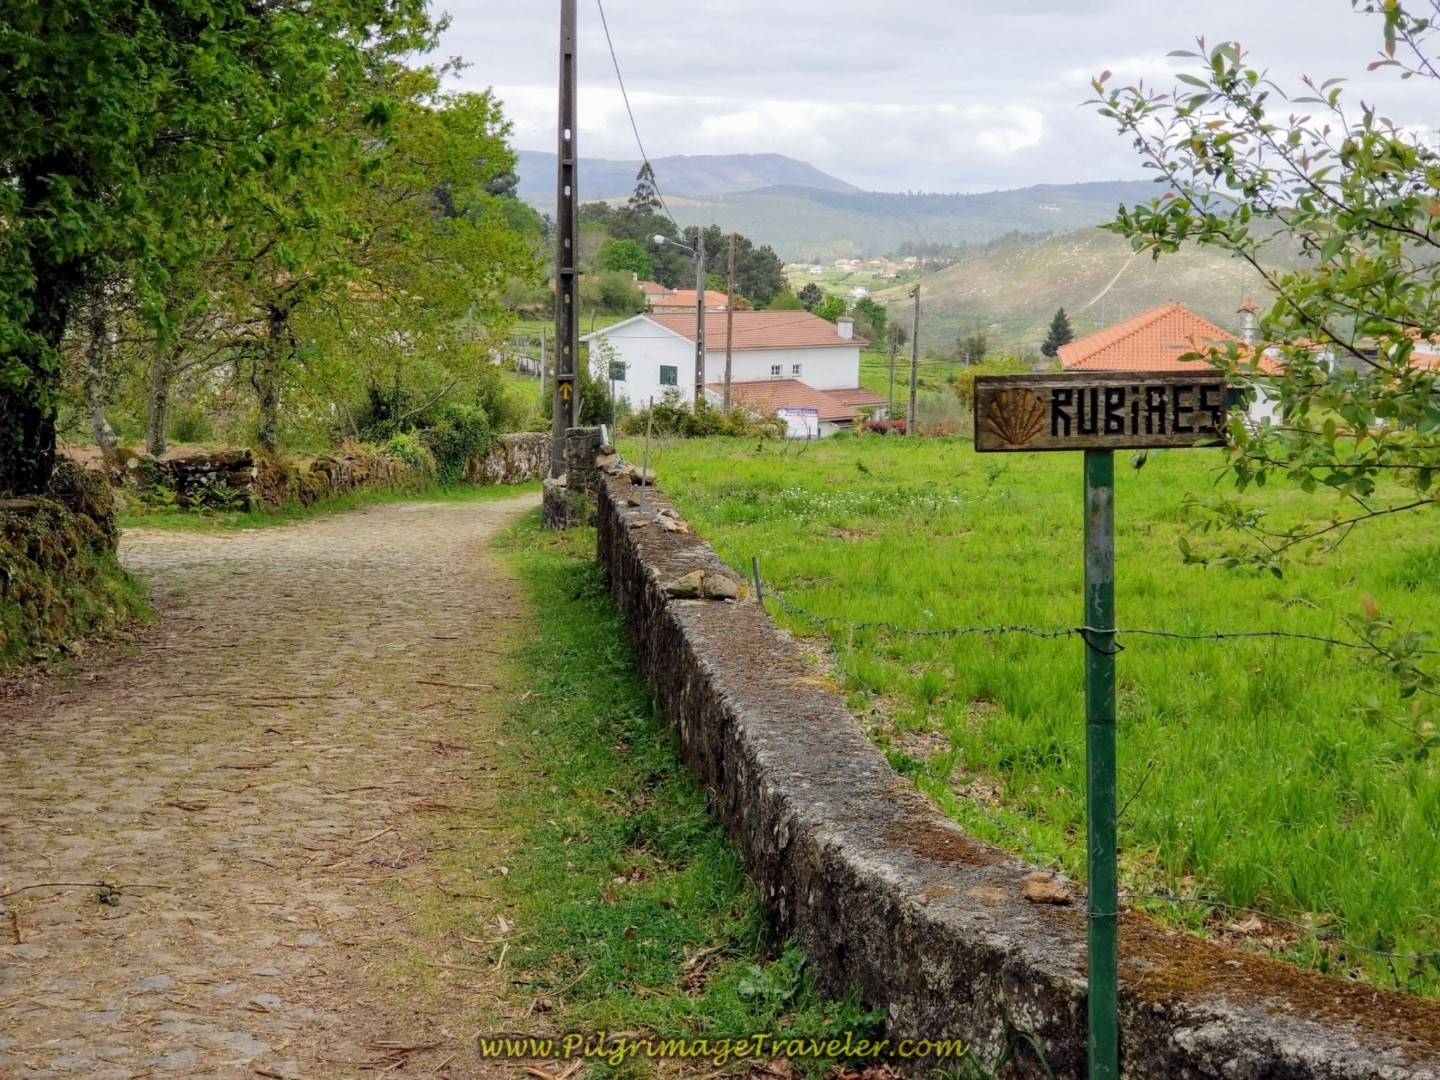 Entering Rubiães on day eighteen on the Central Route of the Portuguese Camino